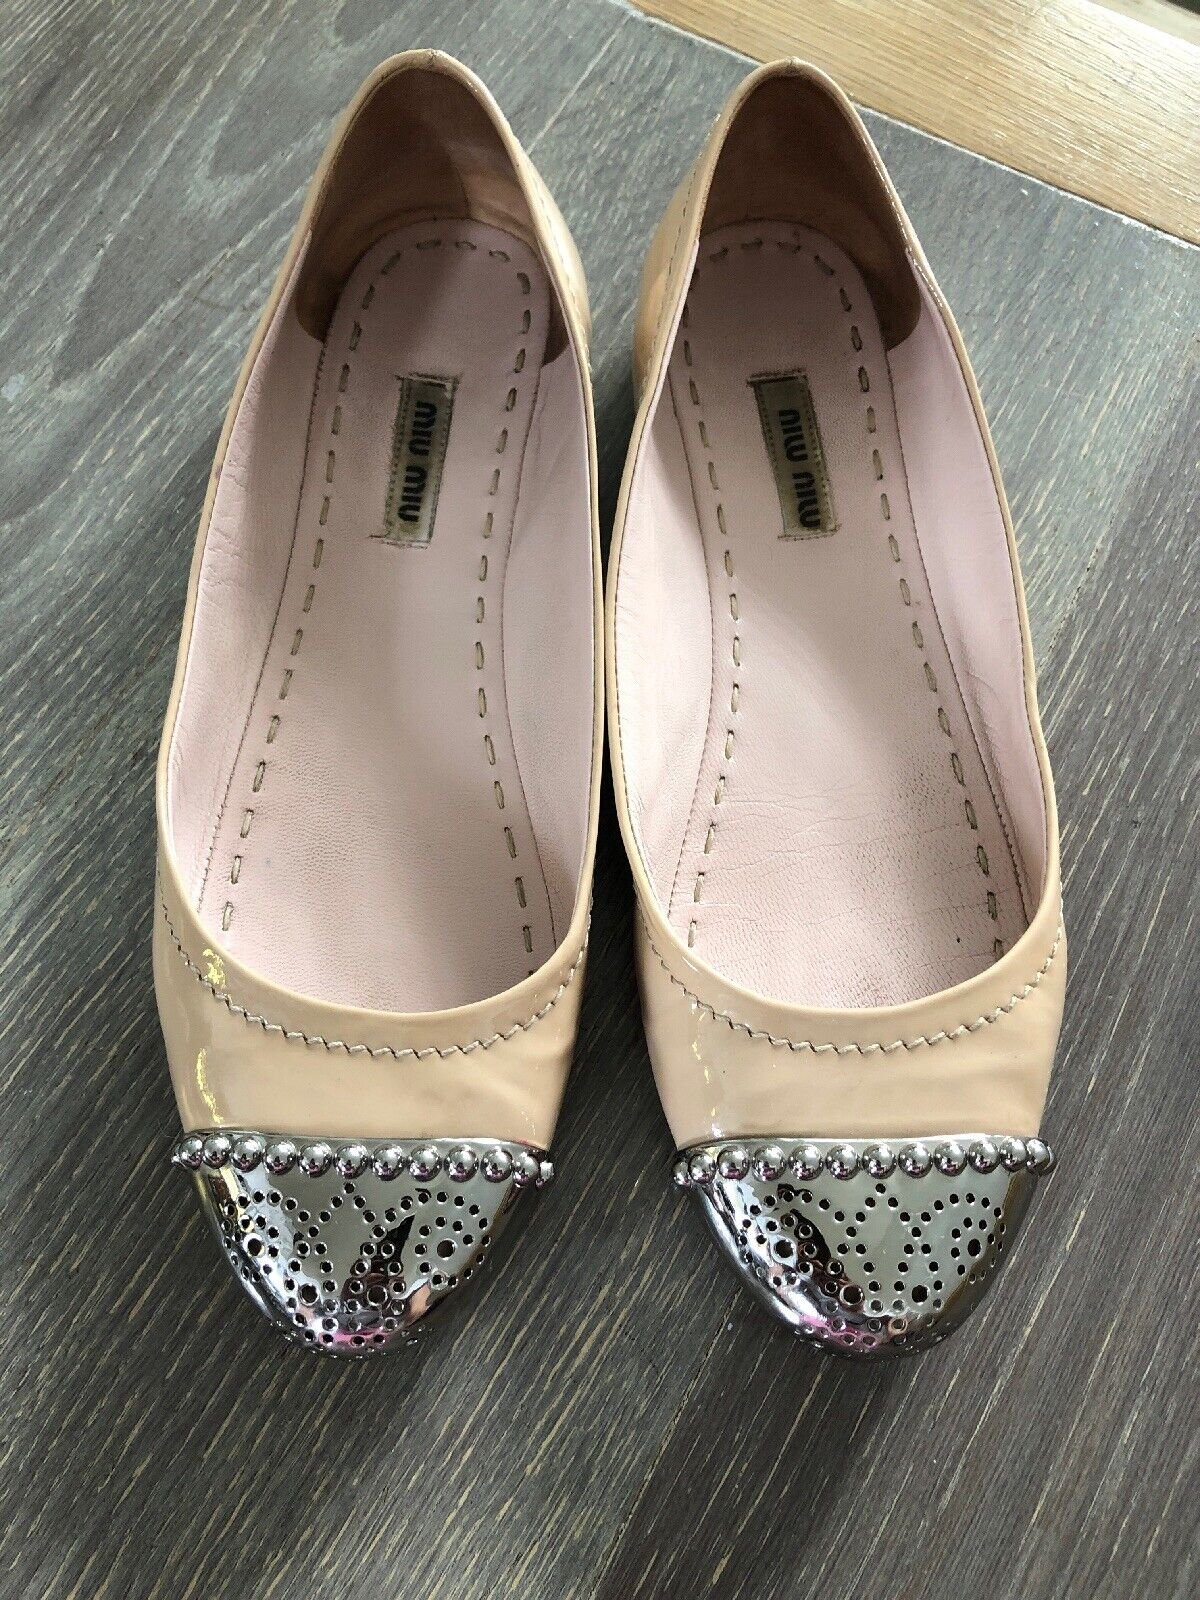 Authentic Miu Miu Ladies Nude Patent Flats shoes Size 38.5 Or 5.5